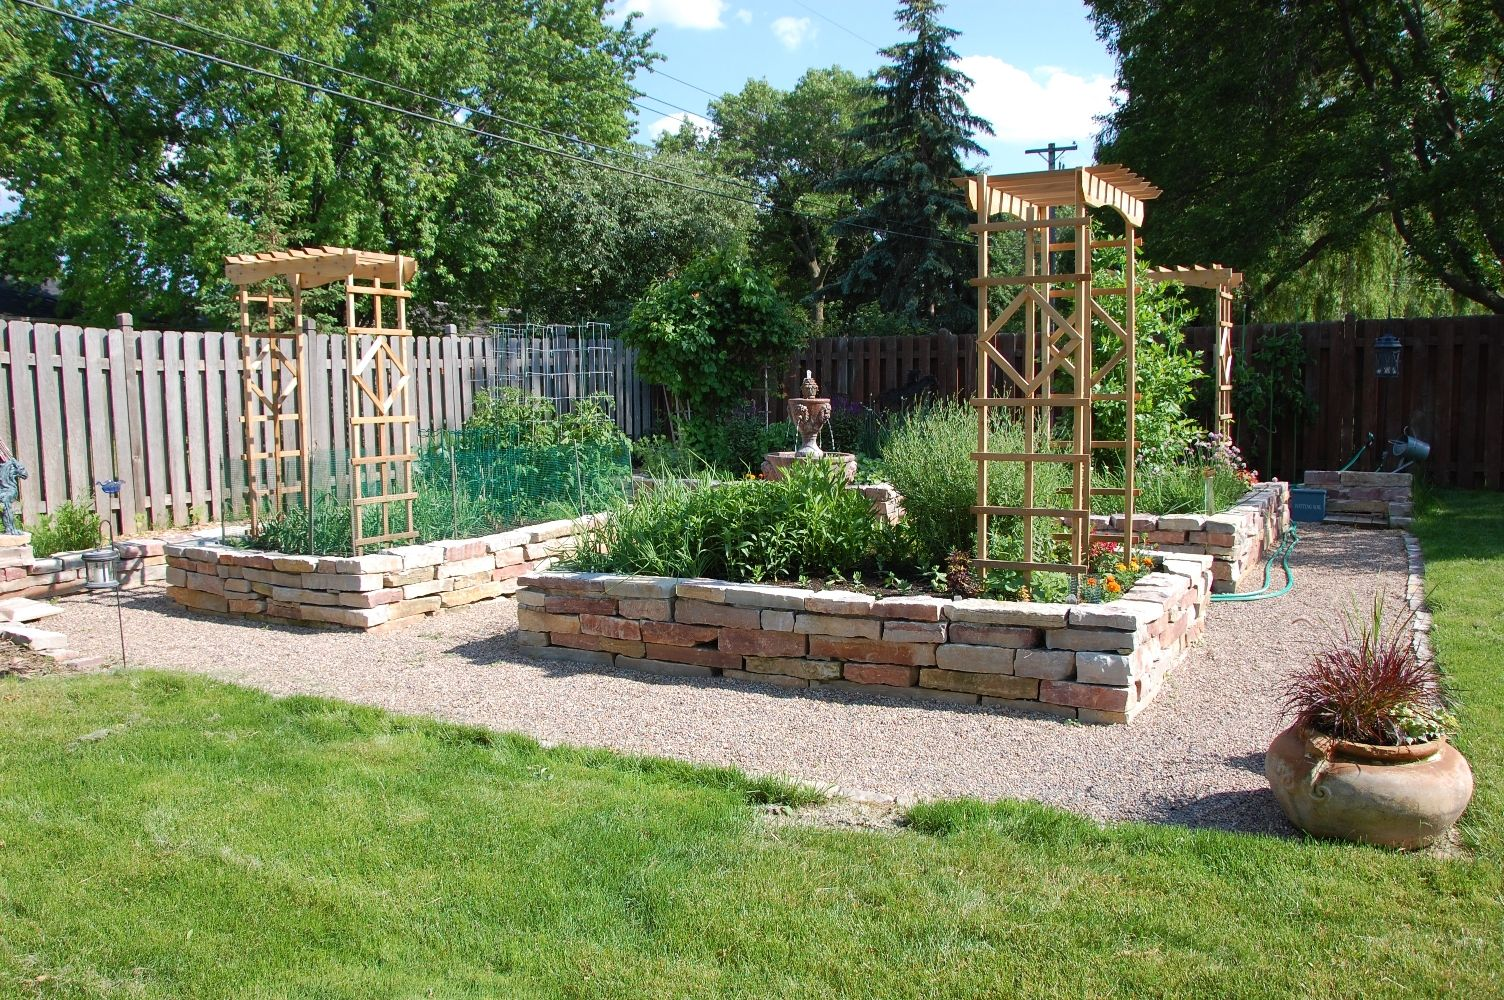 Design And Build Your Own Raised Garden Bed Watters Garden Center Raised Garden Designs Building Raised Garden Beds Raised Bed Garden Design